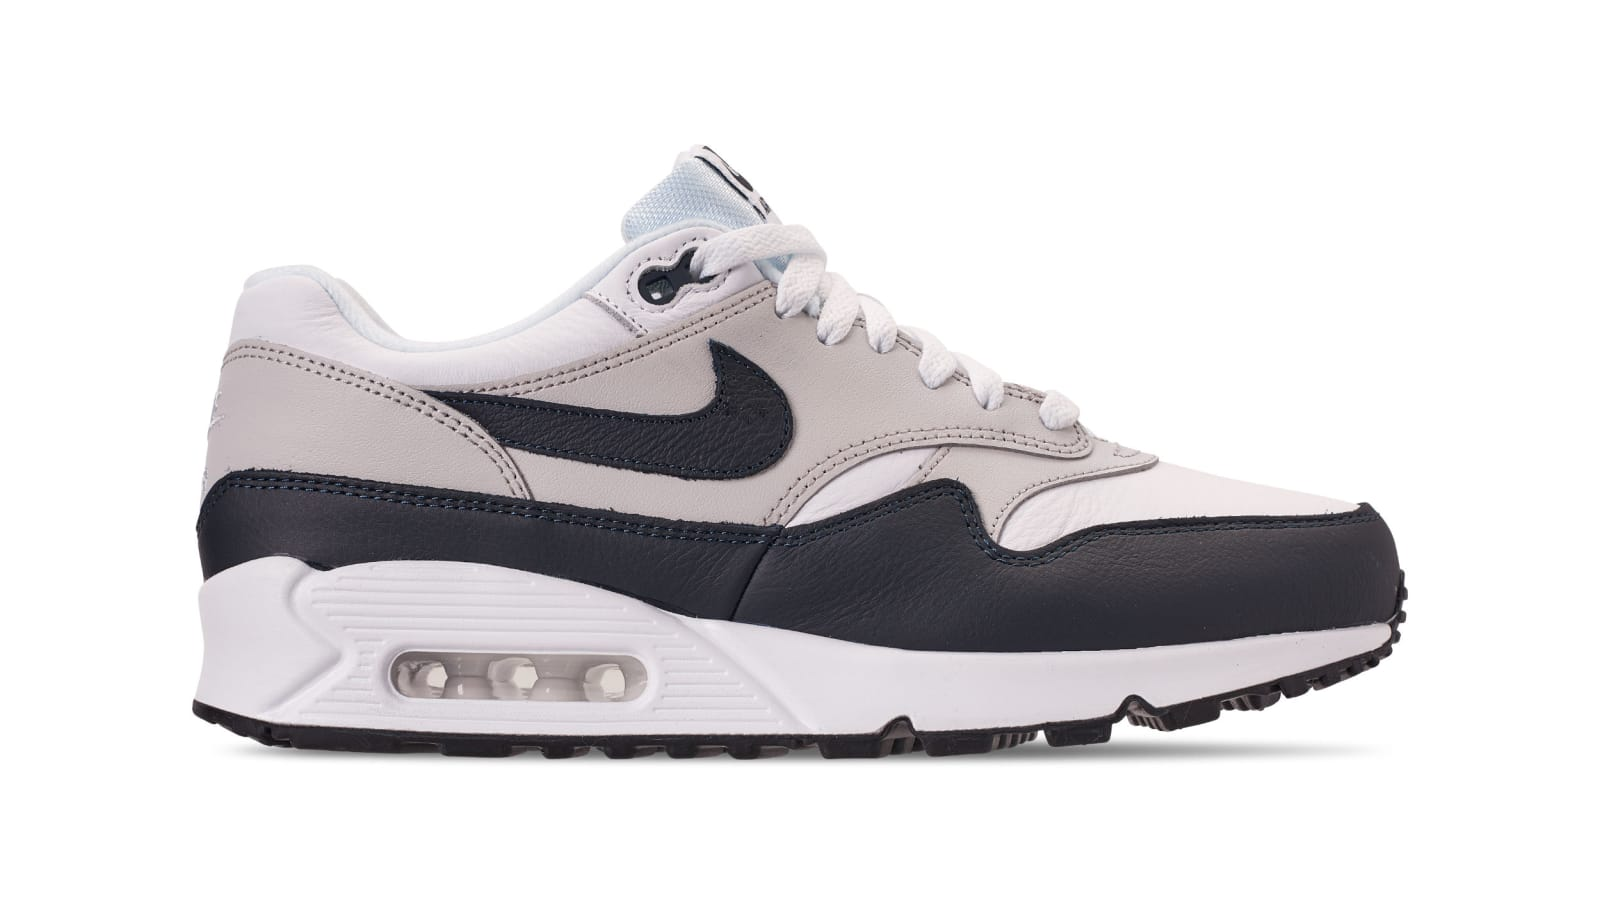 Two New Colorways for the Nike Air Max 90/1 are Landing Soon